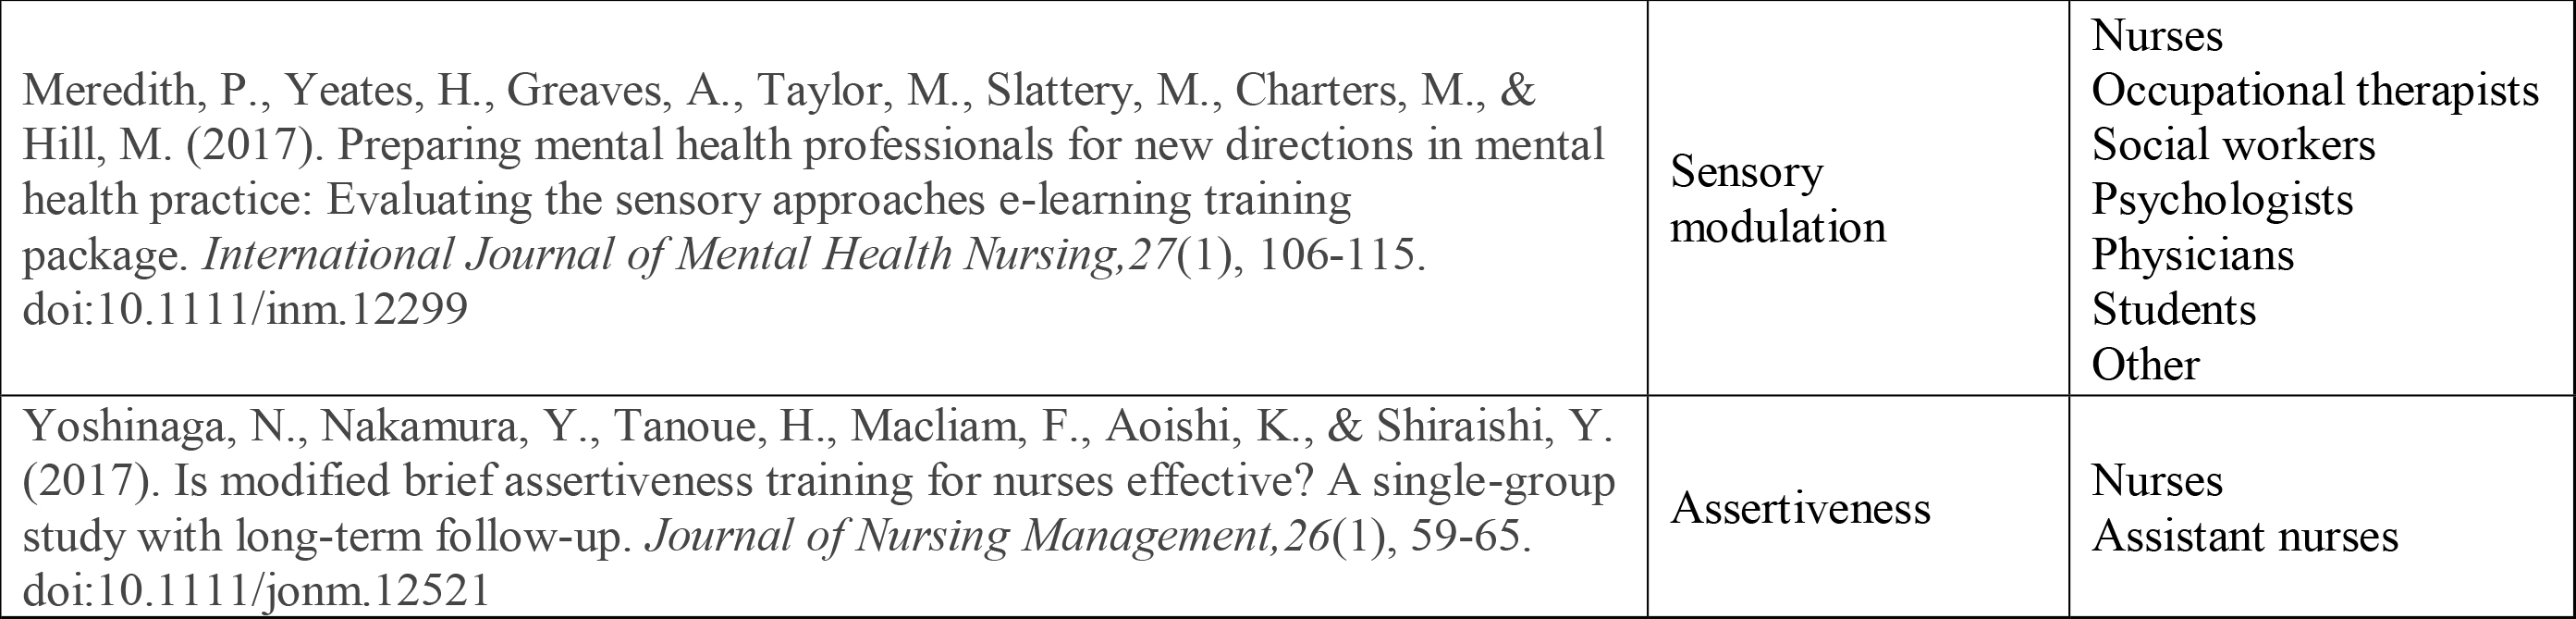 Studies Exploring Continuing Education (CE) in Psychiatry Including Nurses as Part of Their Sampled Participants